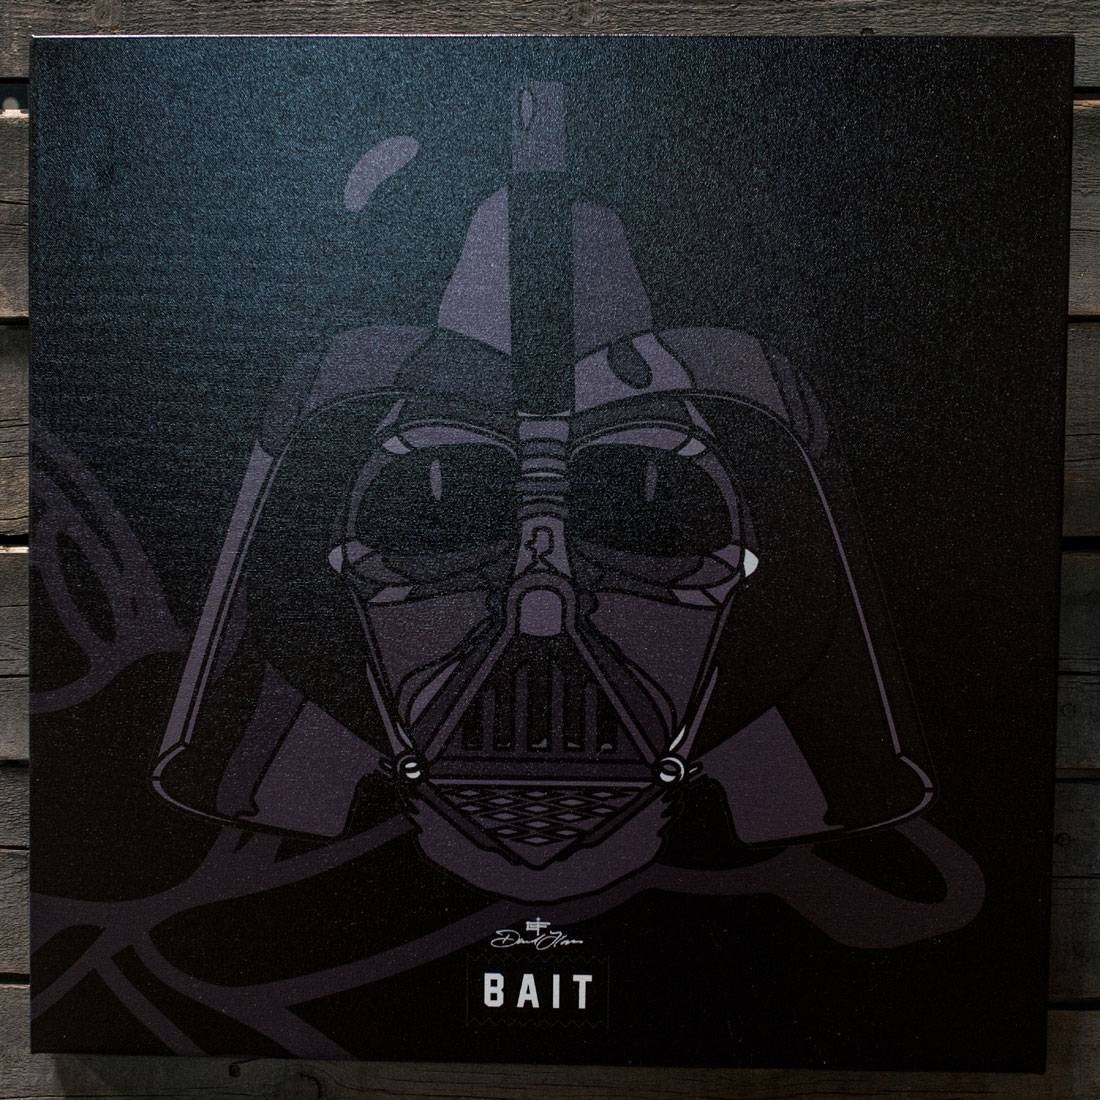 BAIT x David Flores Star Wars 36 Inch Canvas - Darth Vader (black)